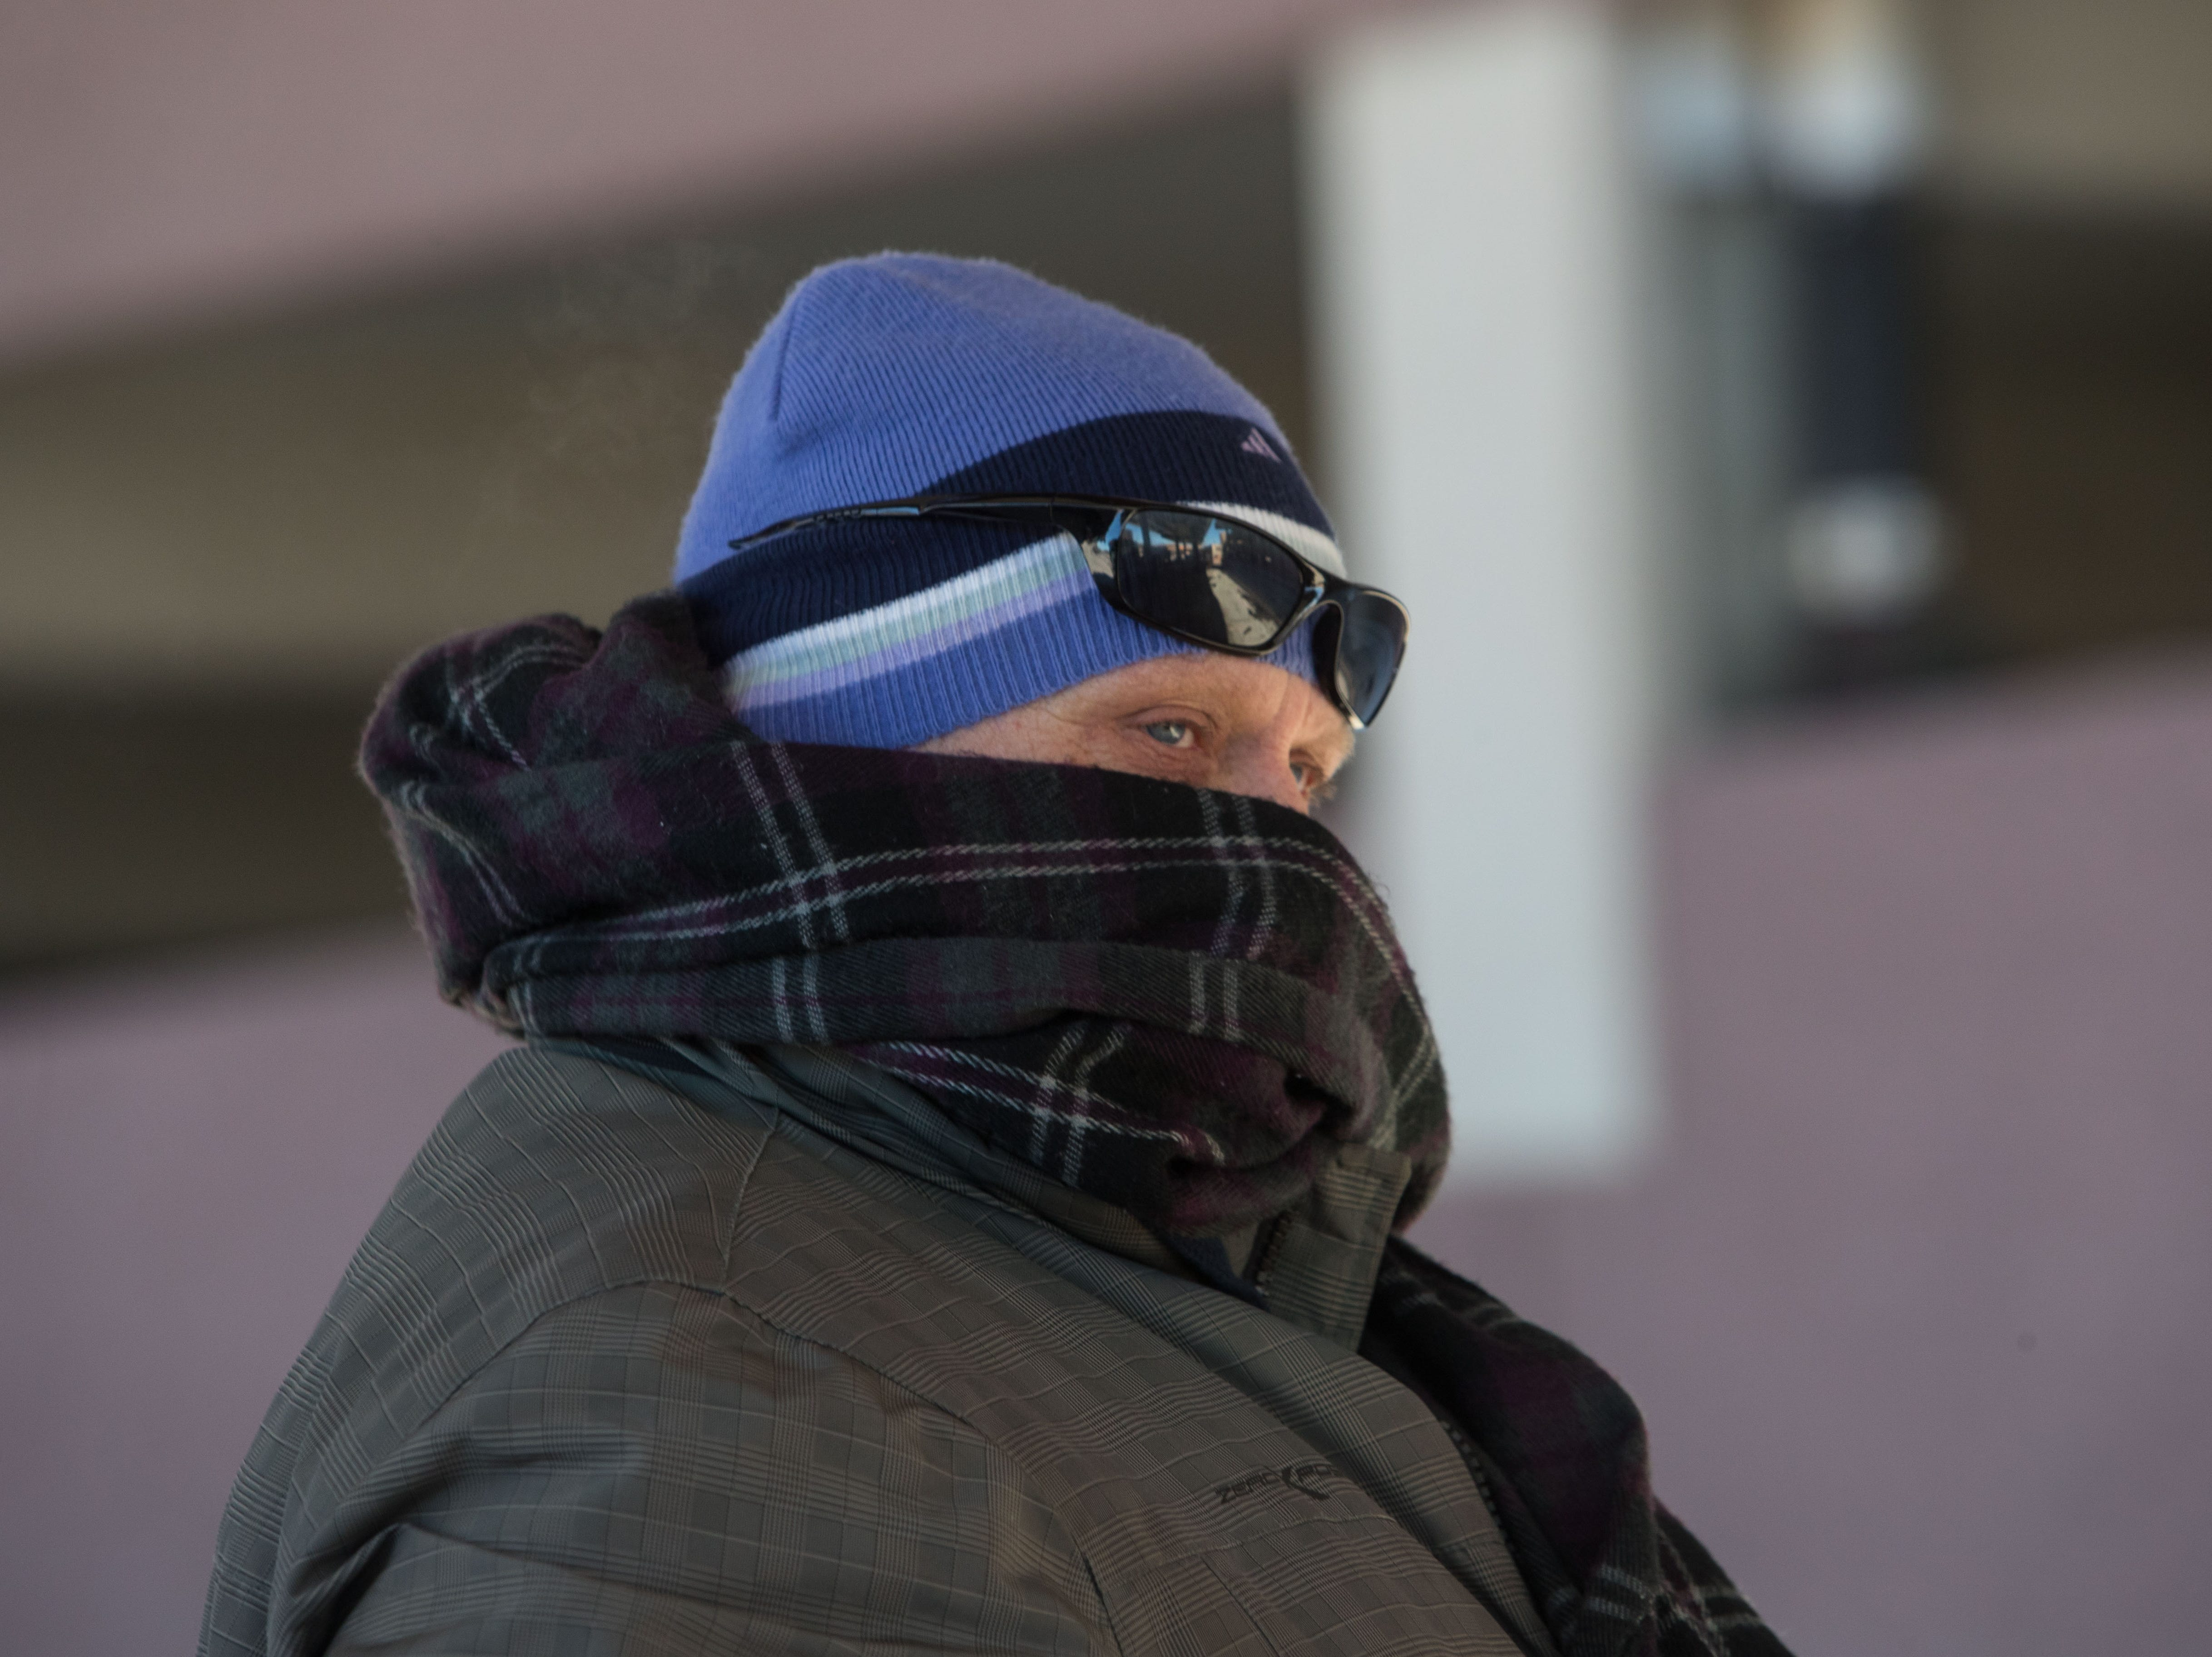 Sean Maher waits for his bus to arrive in downtown Sioux Falls, S.D., Wednesday, Jan. 30, 2019.